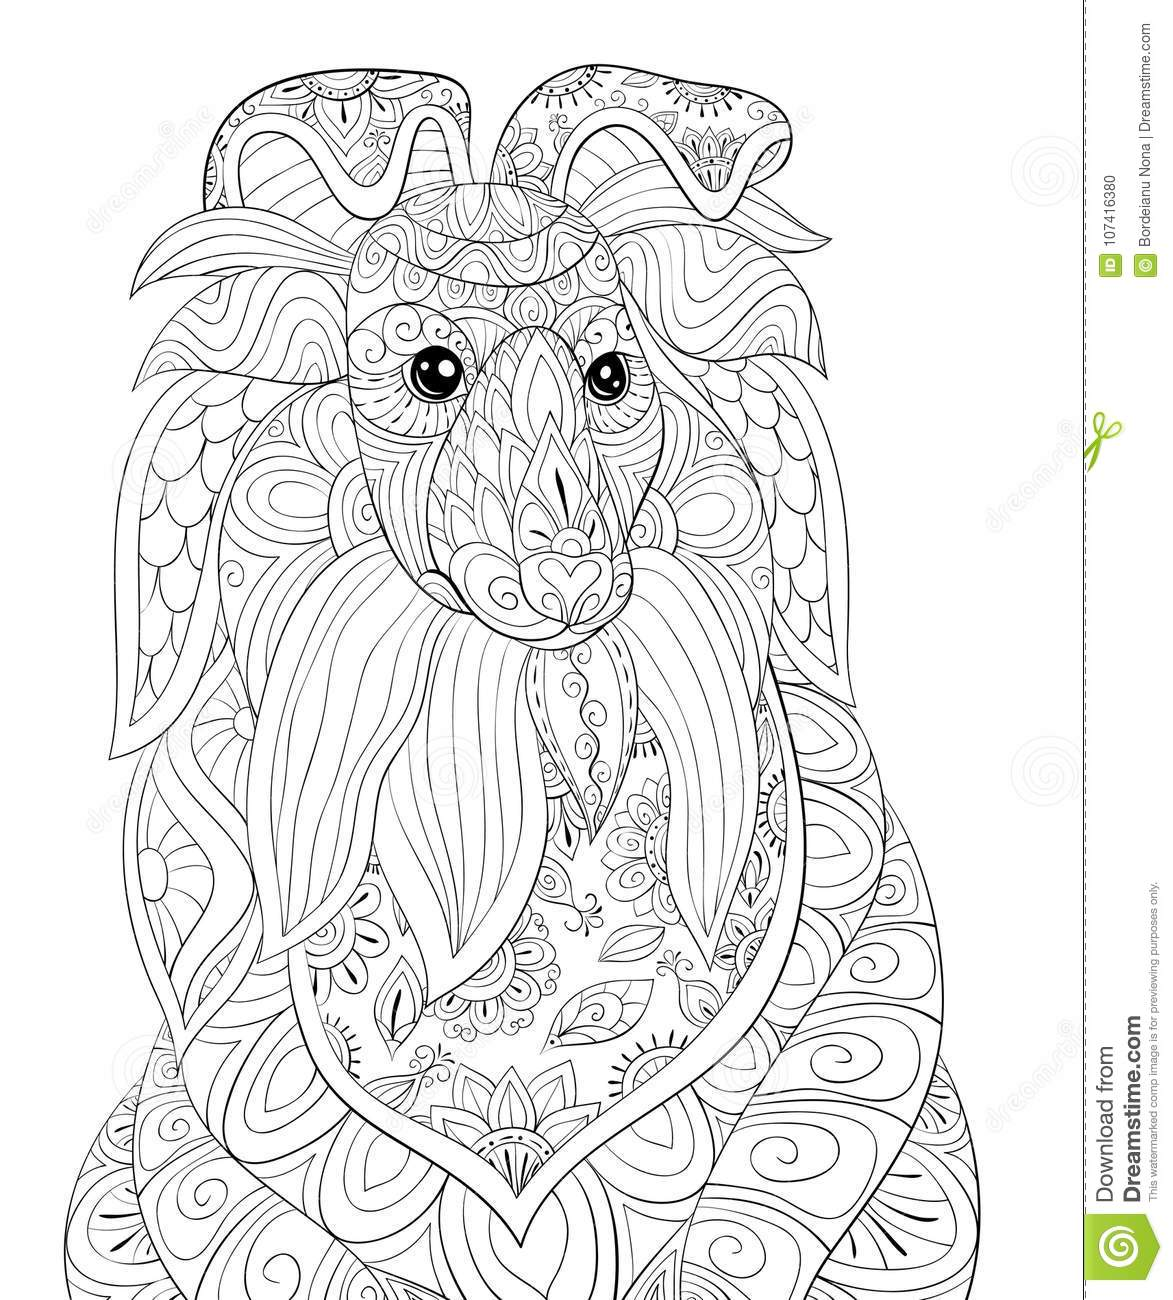 Adult coloring page a cute dog for relaxing zen art style Zen coloring book for adults download